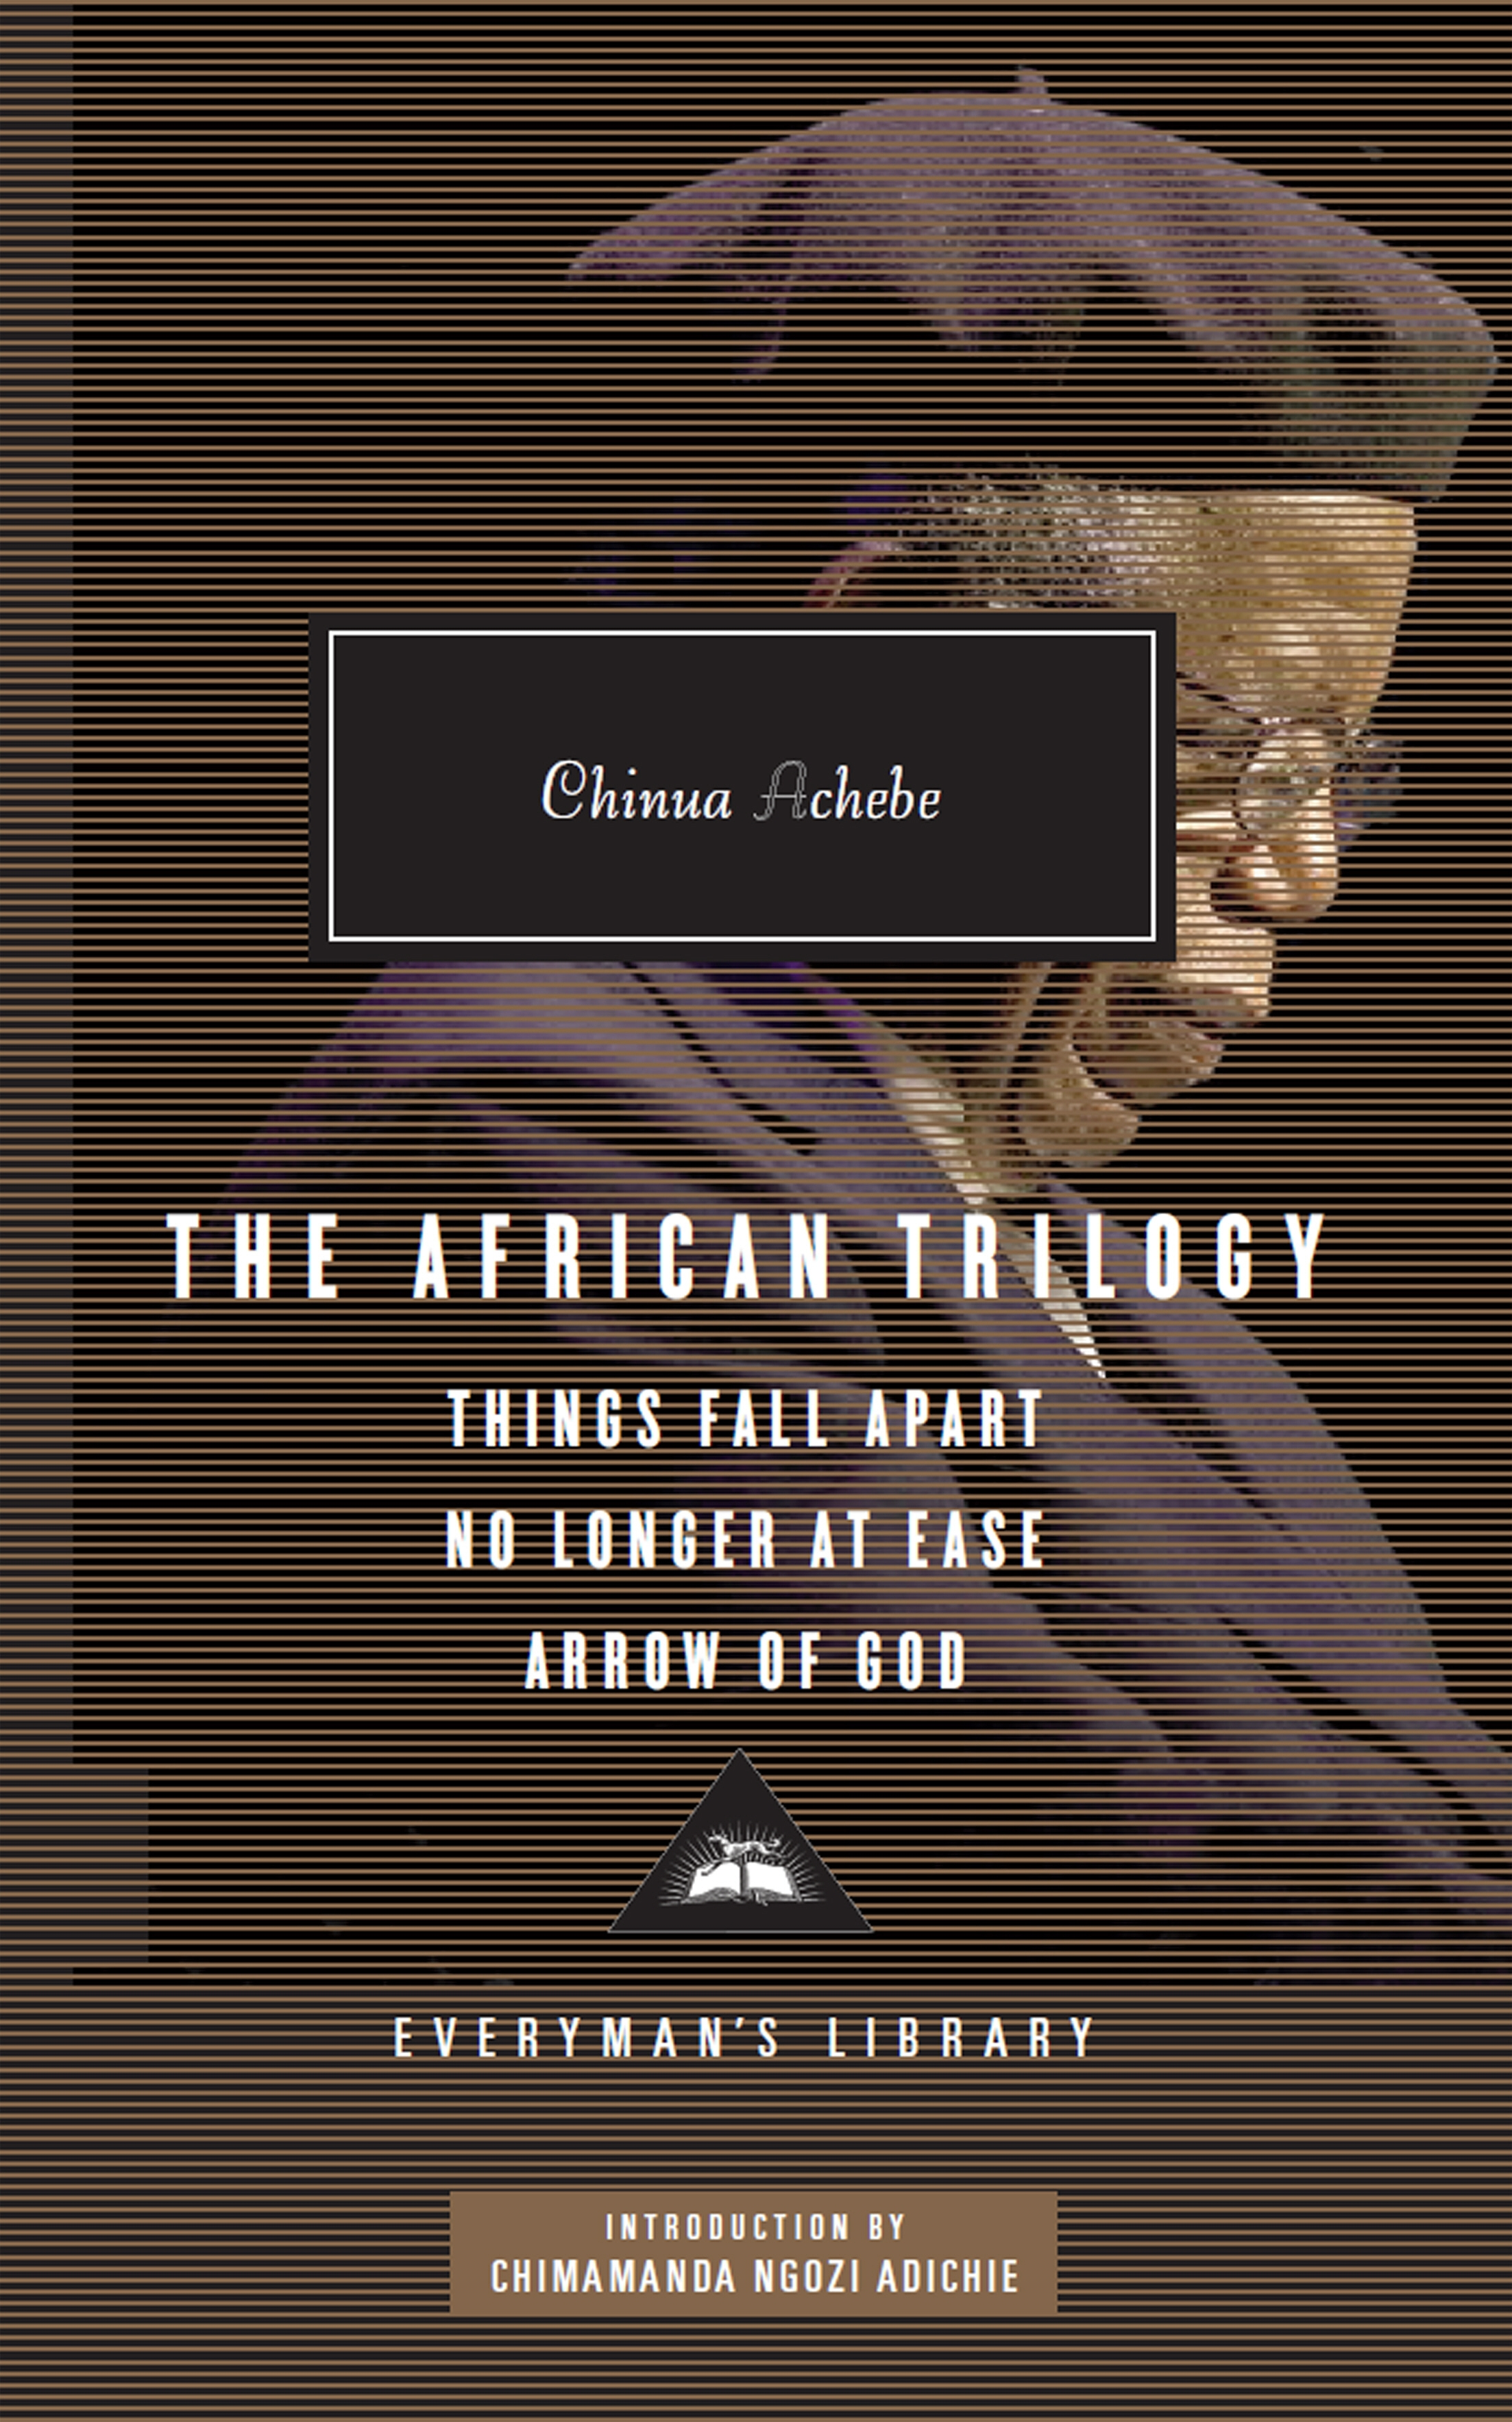 things fall apart by chinua achebe vs Introduction chinua achebe's things fall apart is probably the most authentic narrative ever written about life in nigeria at the turn of the twentieth century although the novel was first published in 1958 — two years before nigeria achieved its independence — thousands of copies are still sold every year in the united states alone.